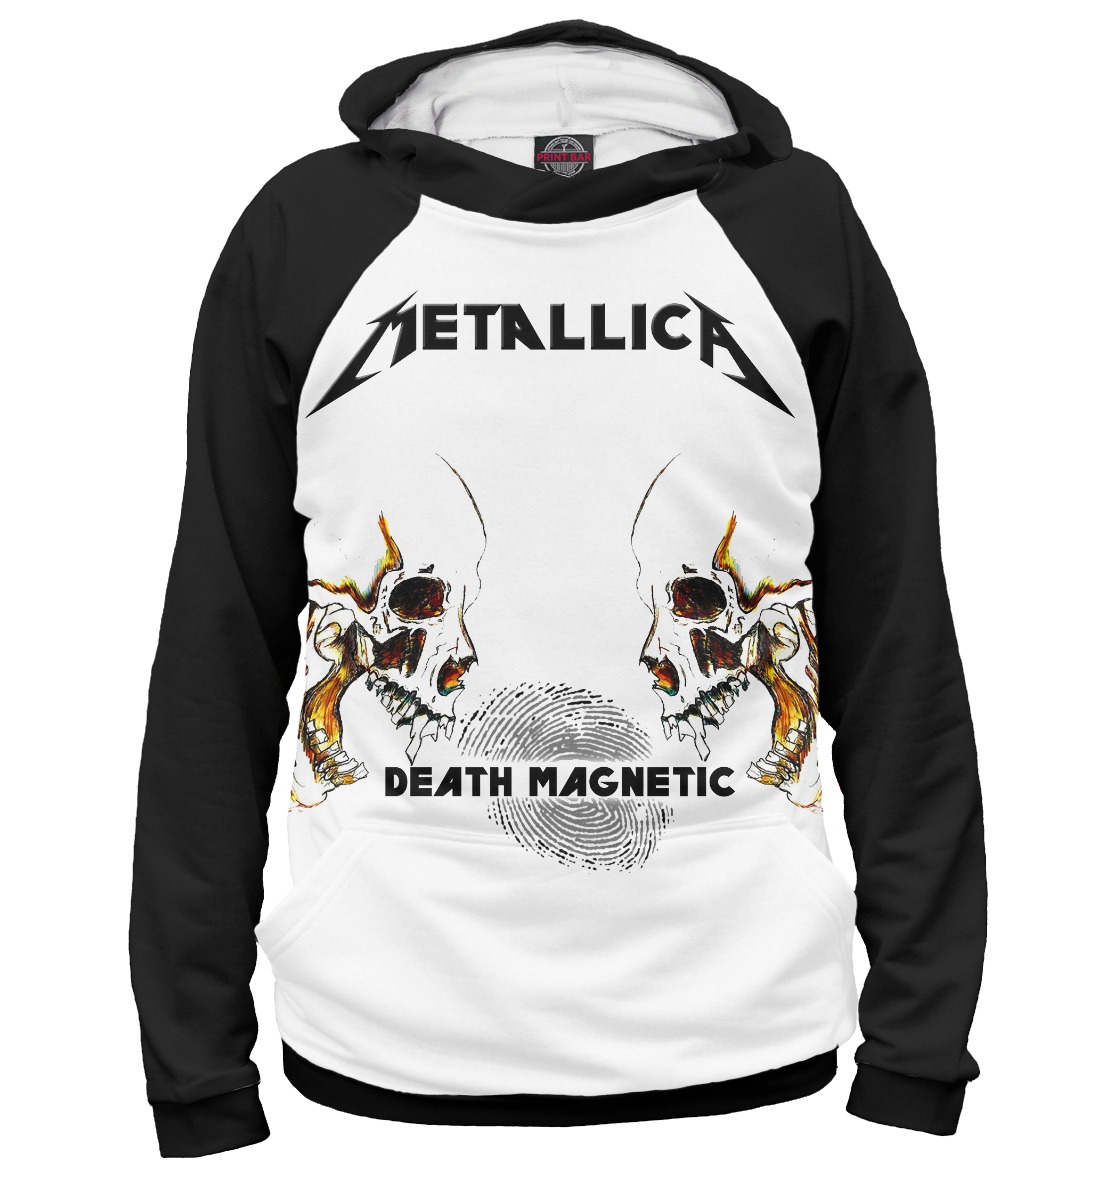 Купить Metallica Death Magnetic Skulls, Printbar, Худи, MET-745017-hud-2